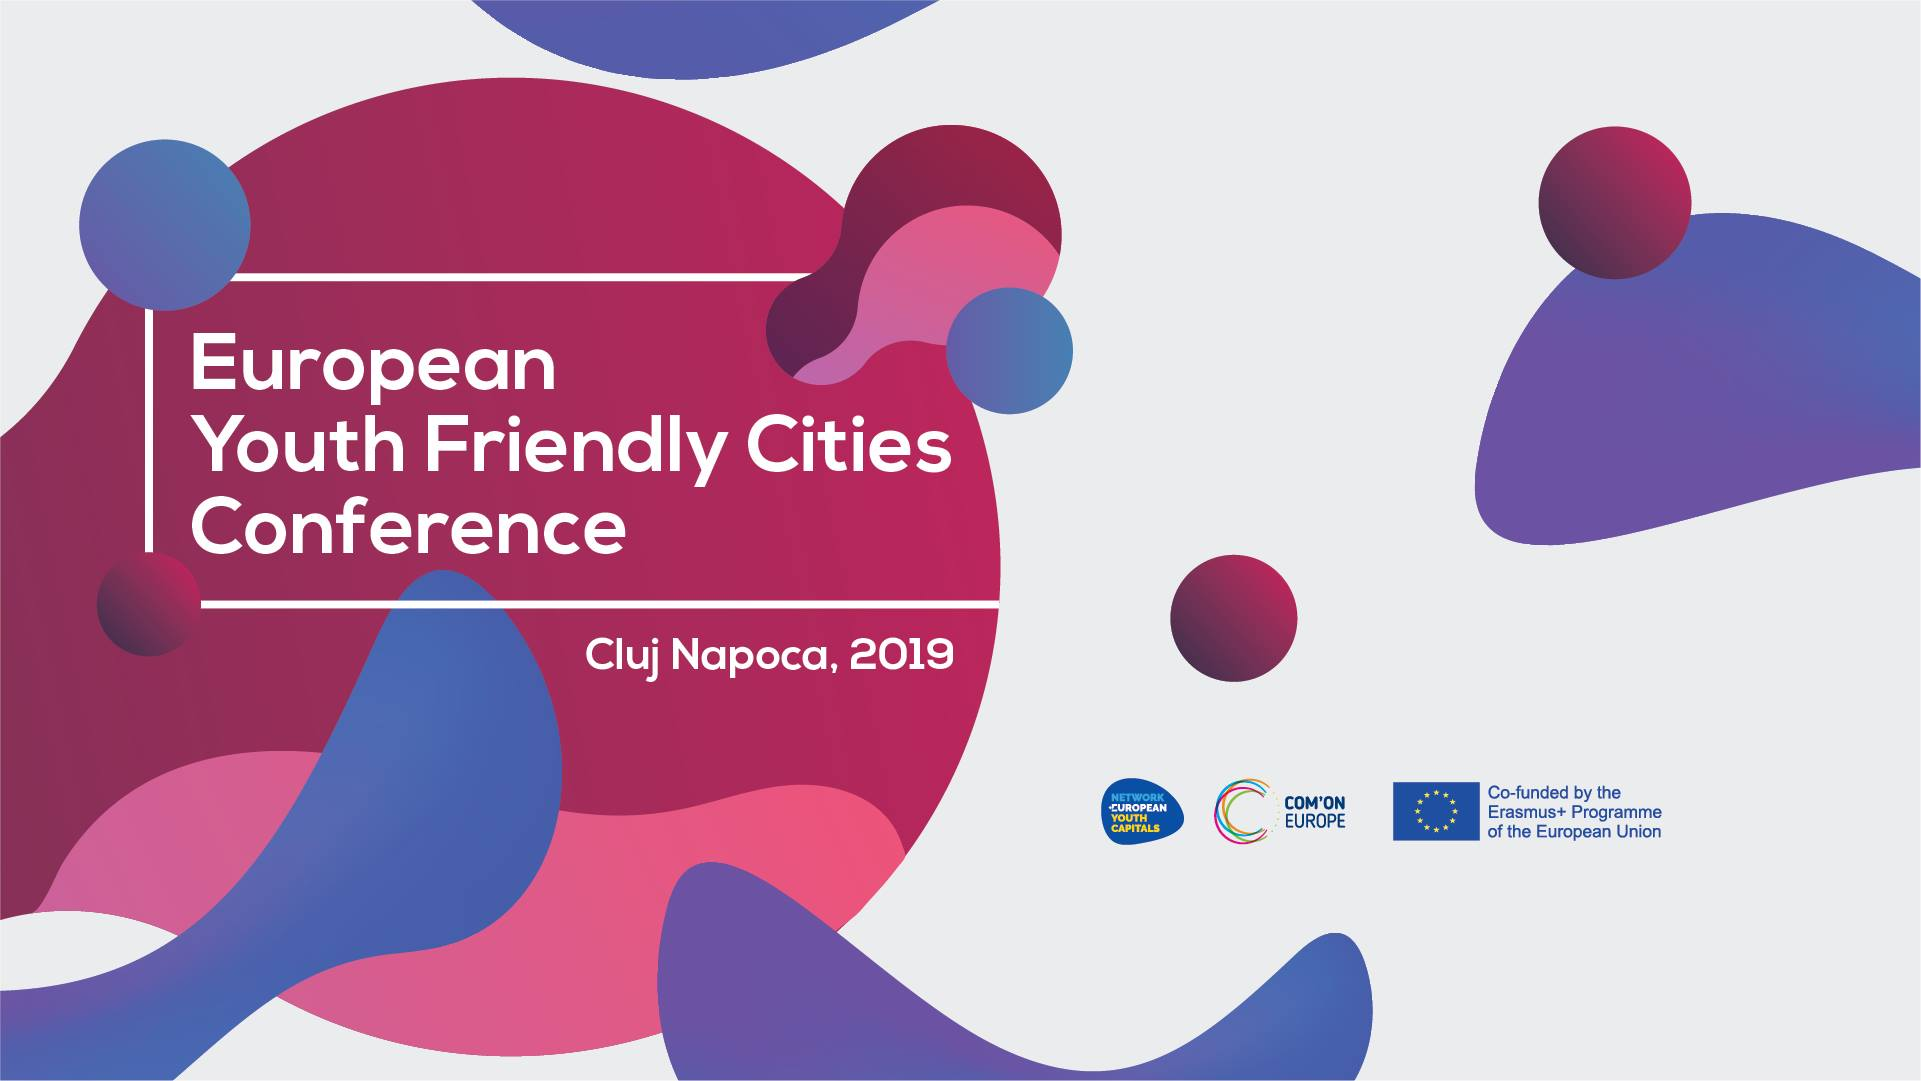 European Youth Friendly Cities Conference 2019